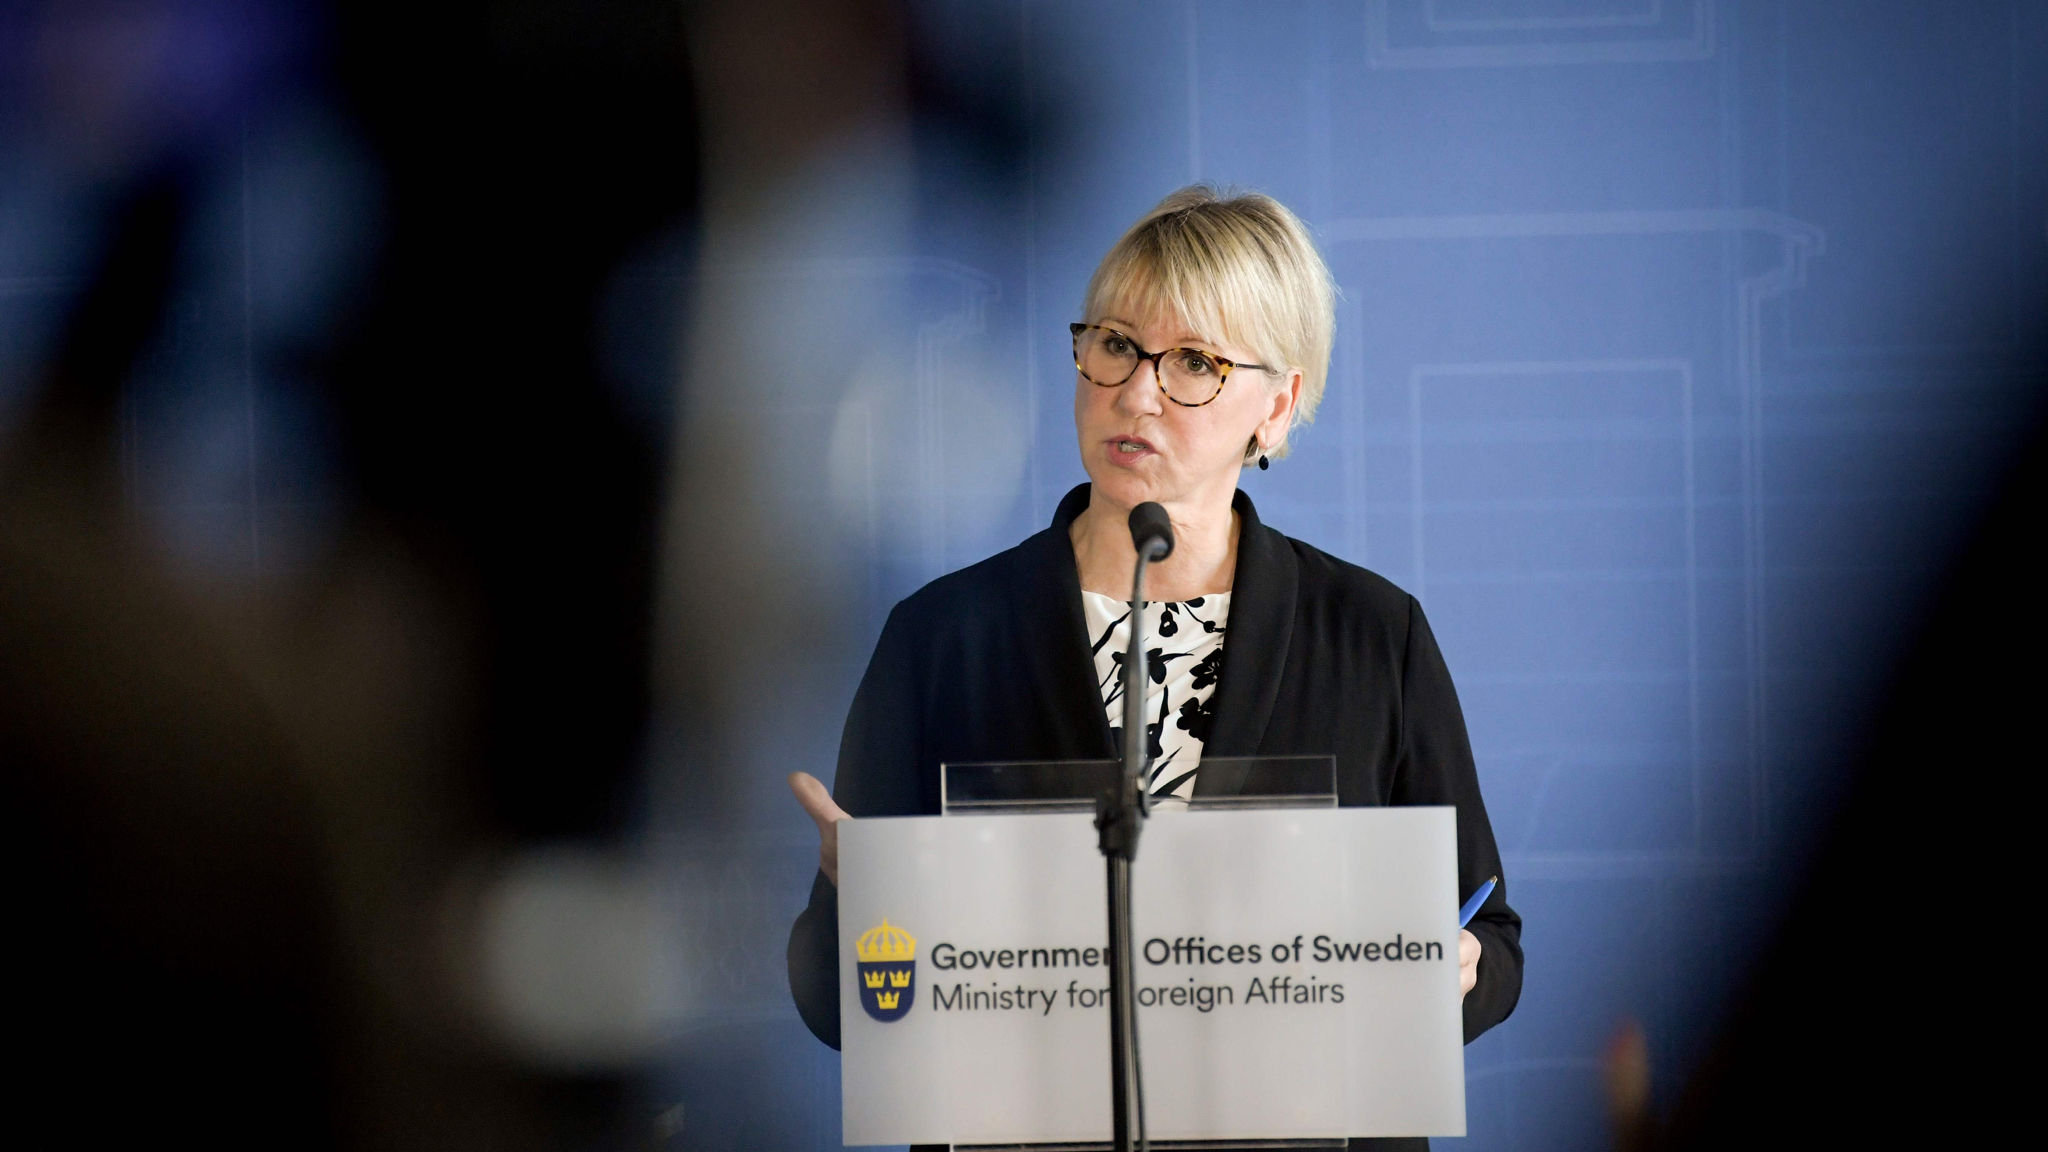 US stance on Arctic is 'dangerous', says Sweden's foreign minister